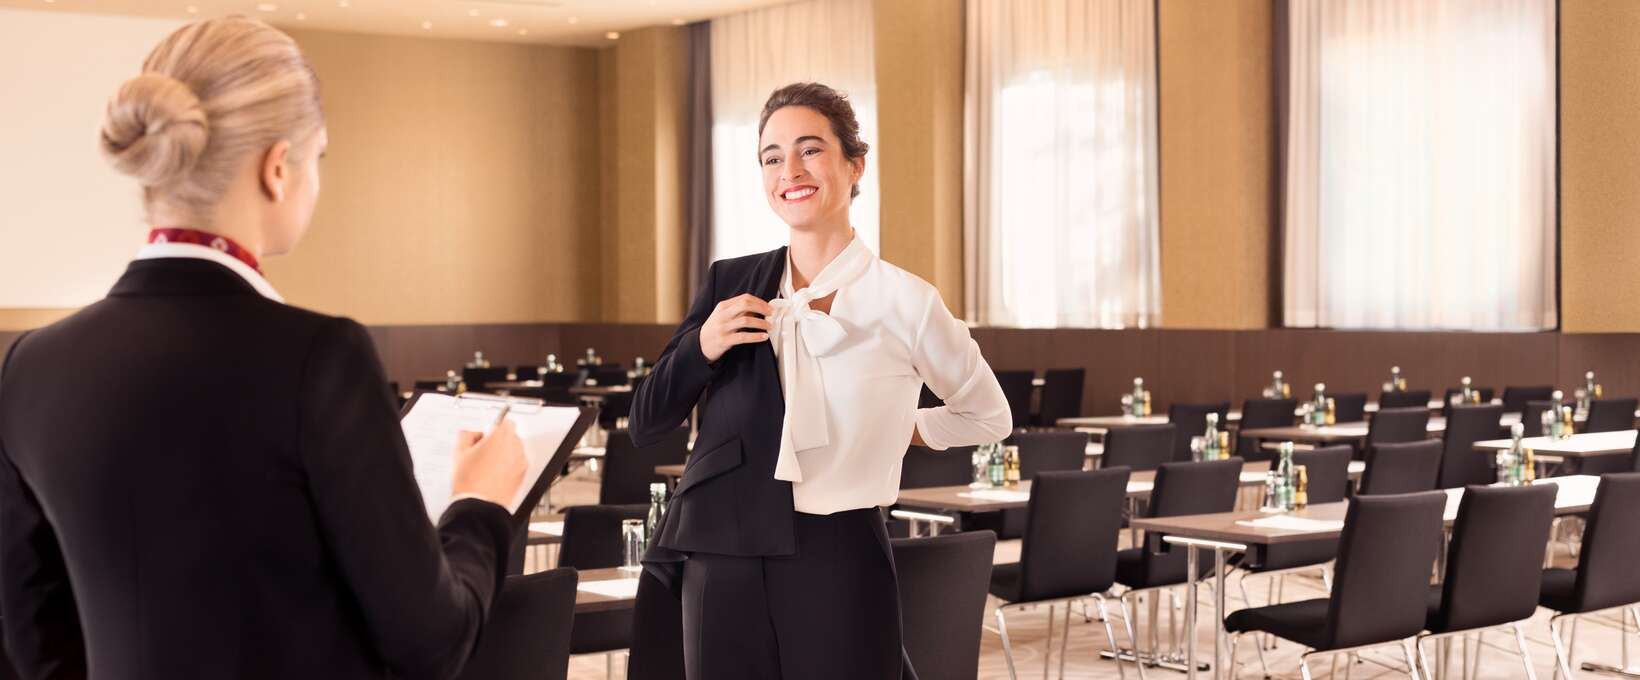 Woman in the seminar rooms | Austria Trend Hotels